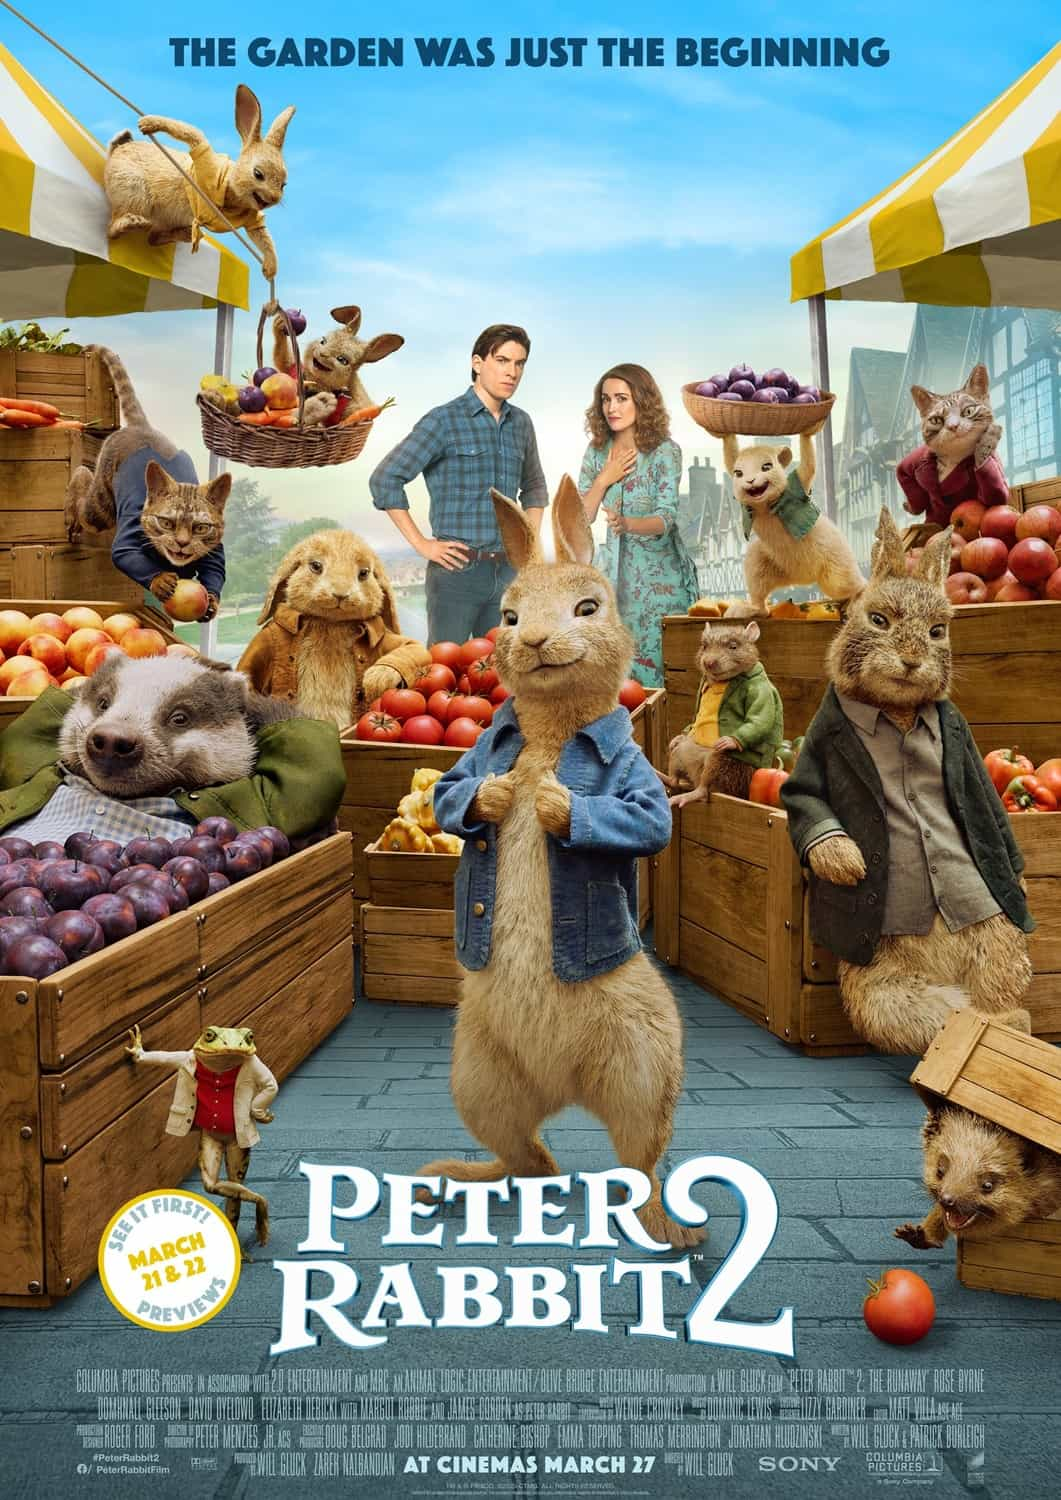 New trailer for animated sequel movie Peter Rabbit 2: The Runaway - film release date 27th March 2020